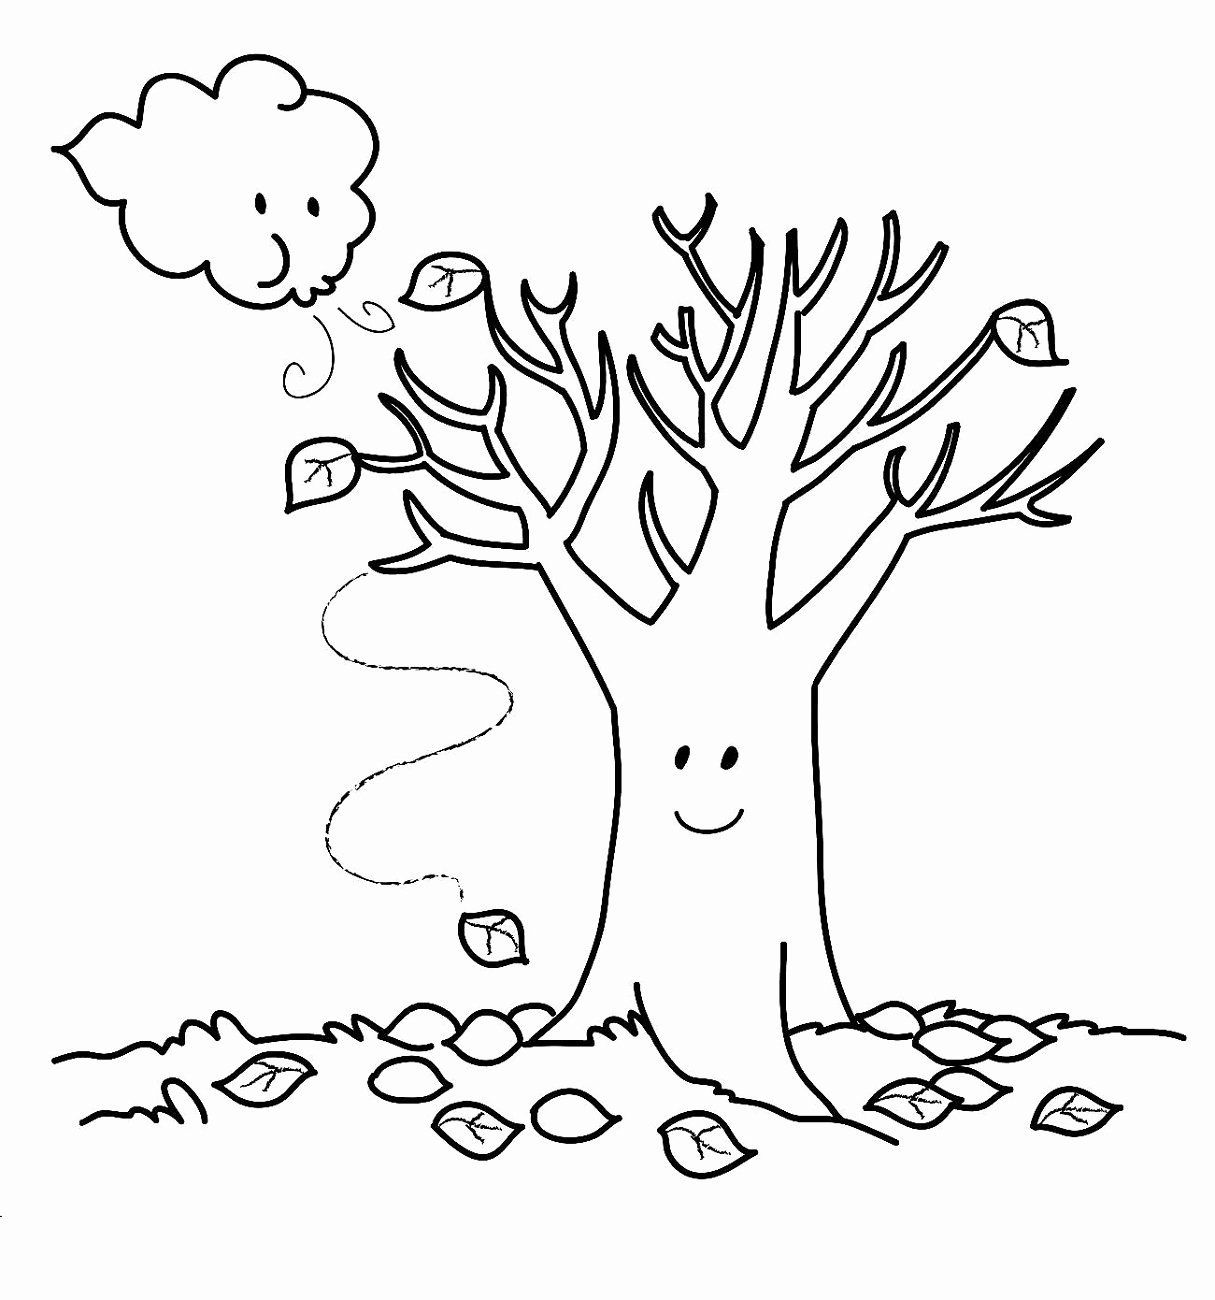 Autumn Coloring Pages For Toddlers Unique Fall Coloring